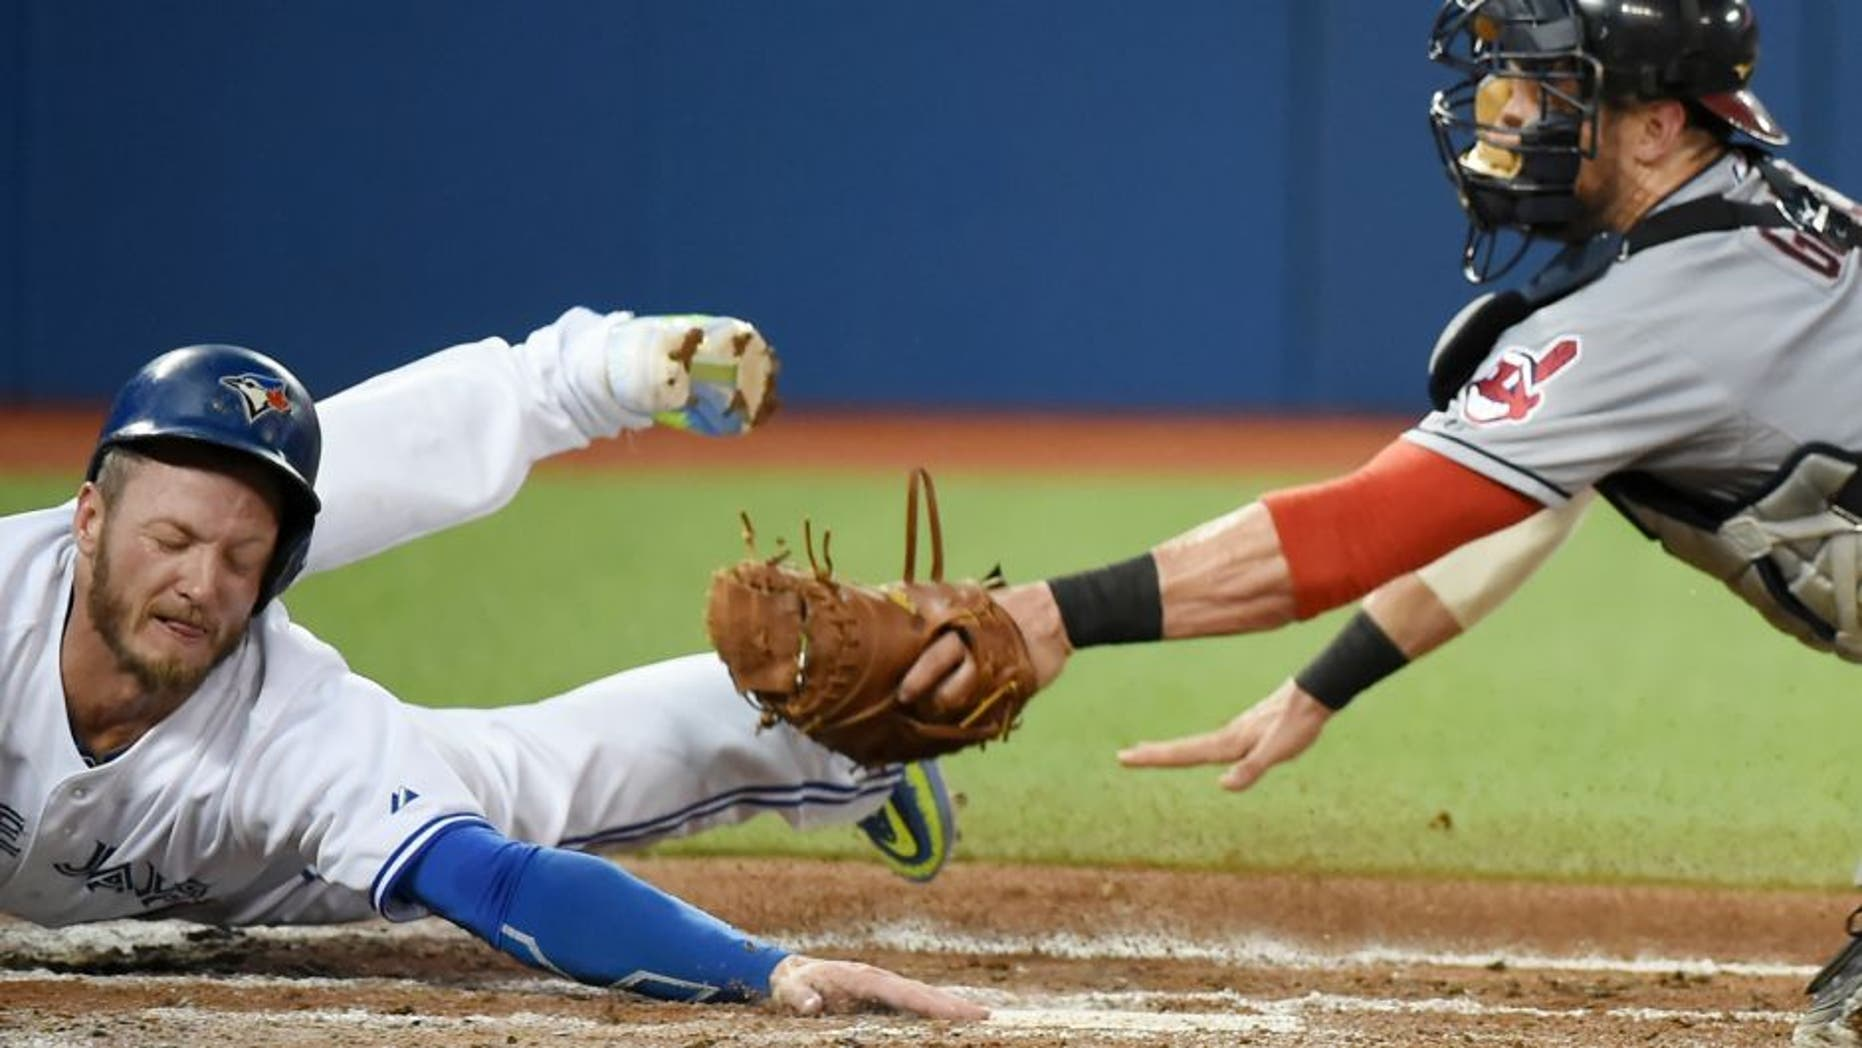 Sep 2, 2015; Toronto, Ontario, CAN; Toronto Blue Jays third baseman Josh Donaldson (20) eludes the tag of Cleveland Indians catcher Yan Gomes (10) to score in the second inning at Rogers Centre. Mandatory Credit: Dan Hamilton-USA TODAY Sports